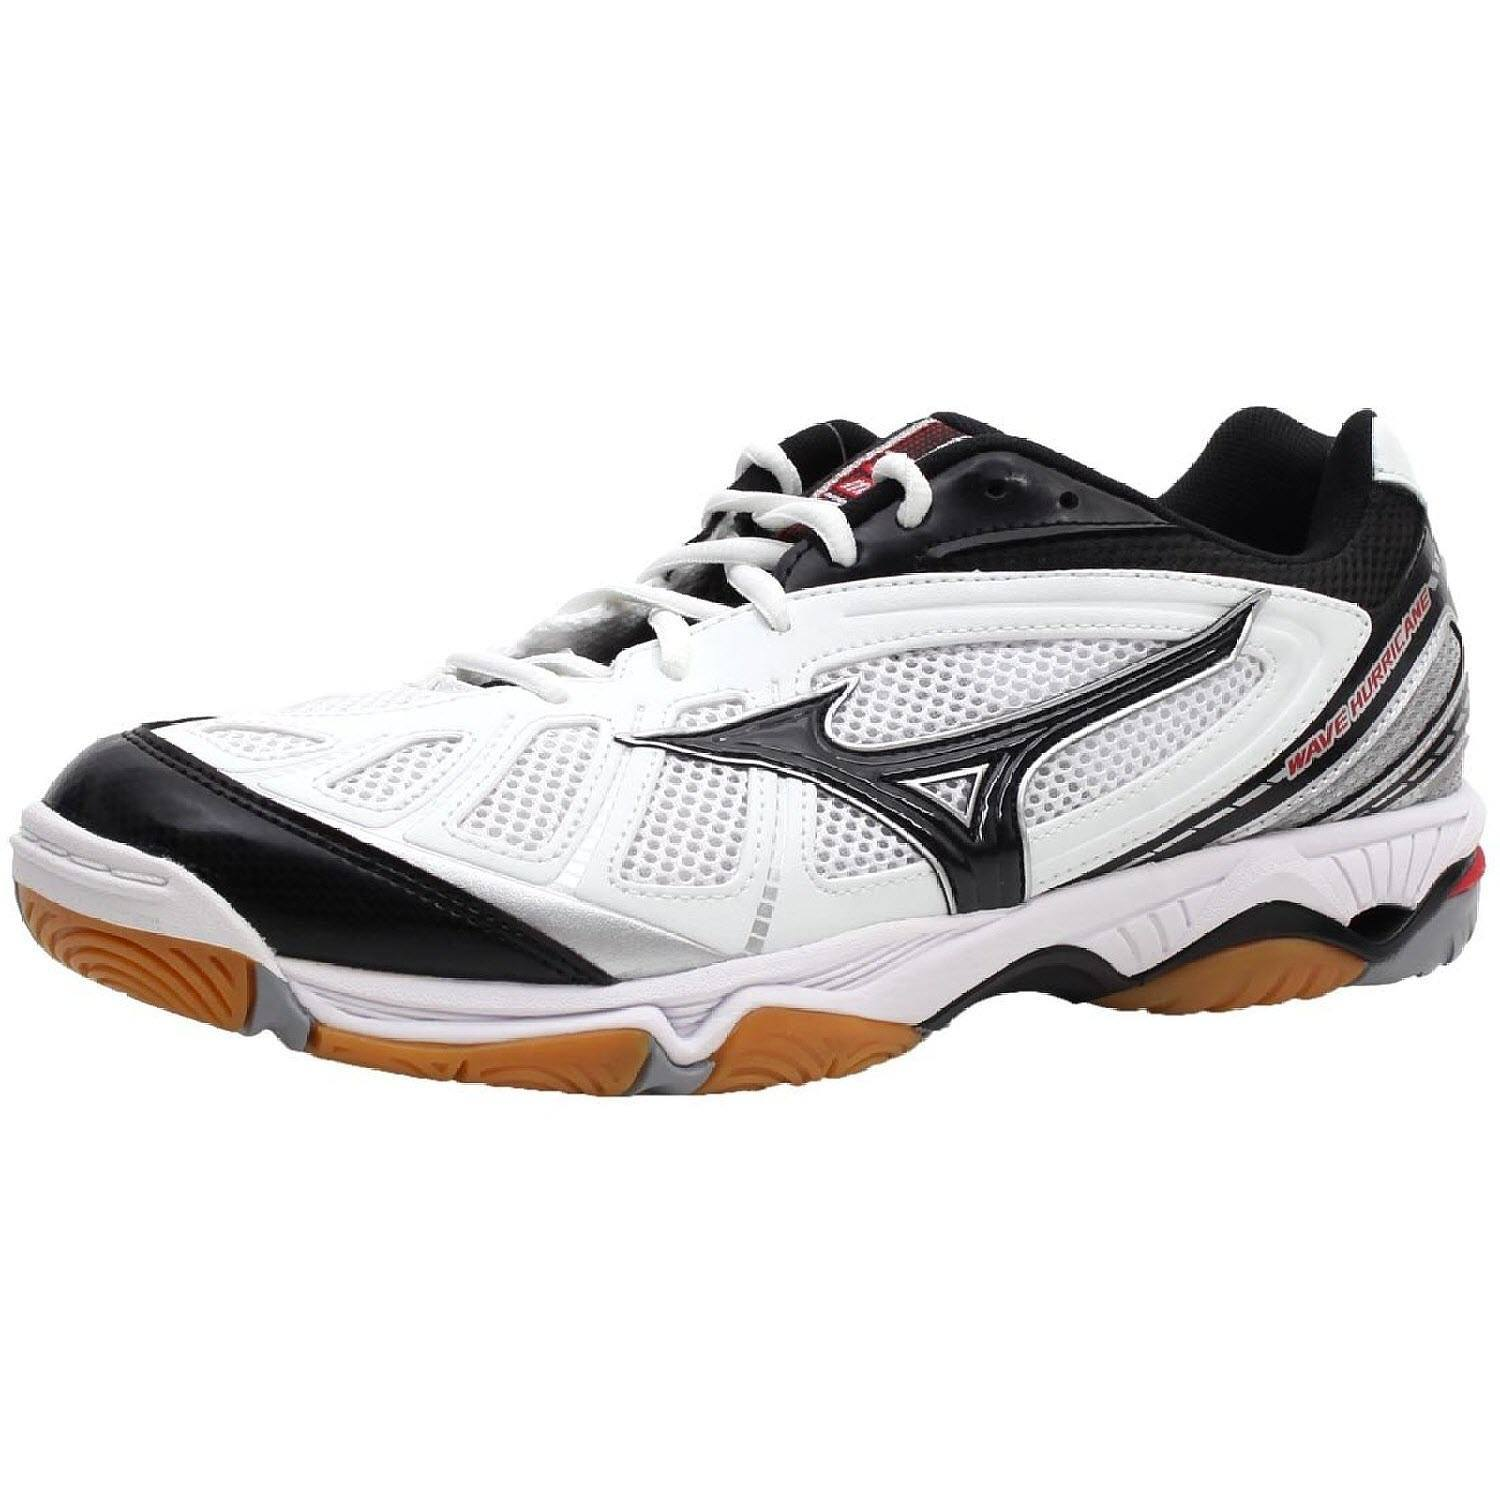 Mizuno Wave Hurricane Men